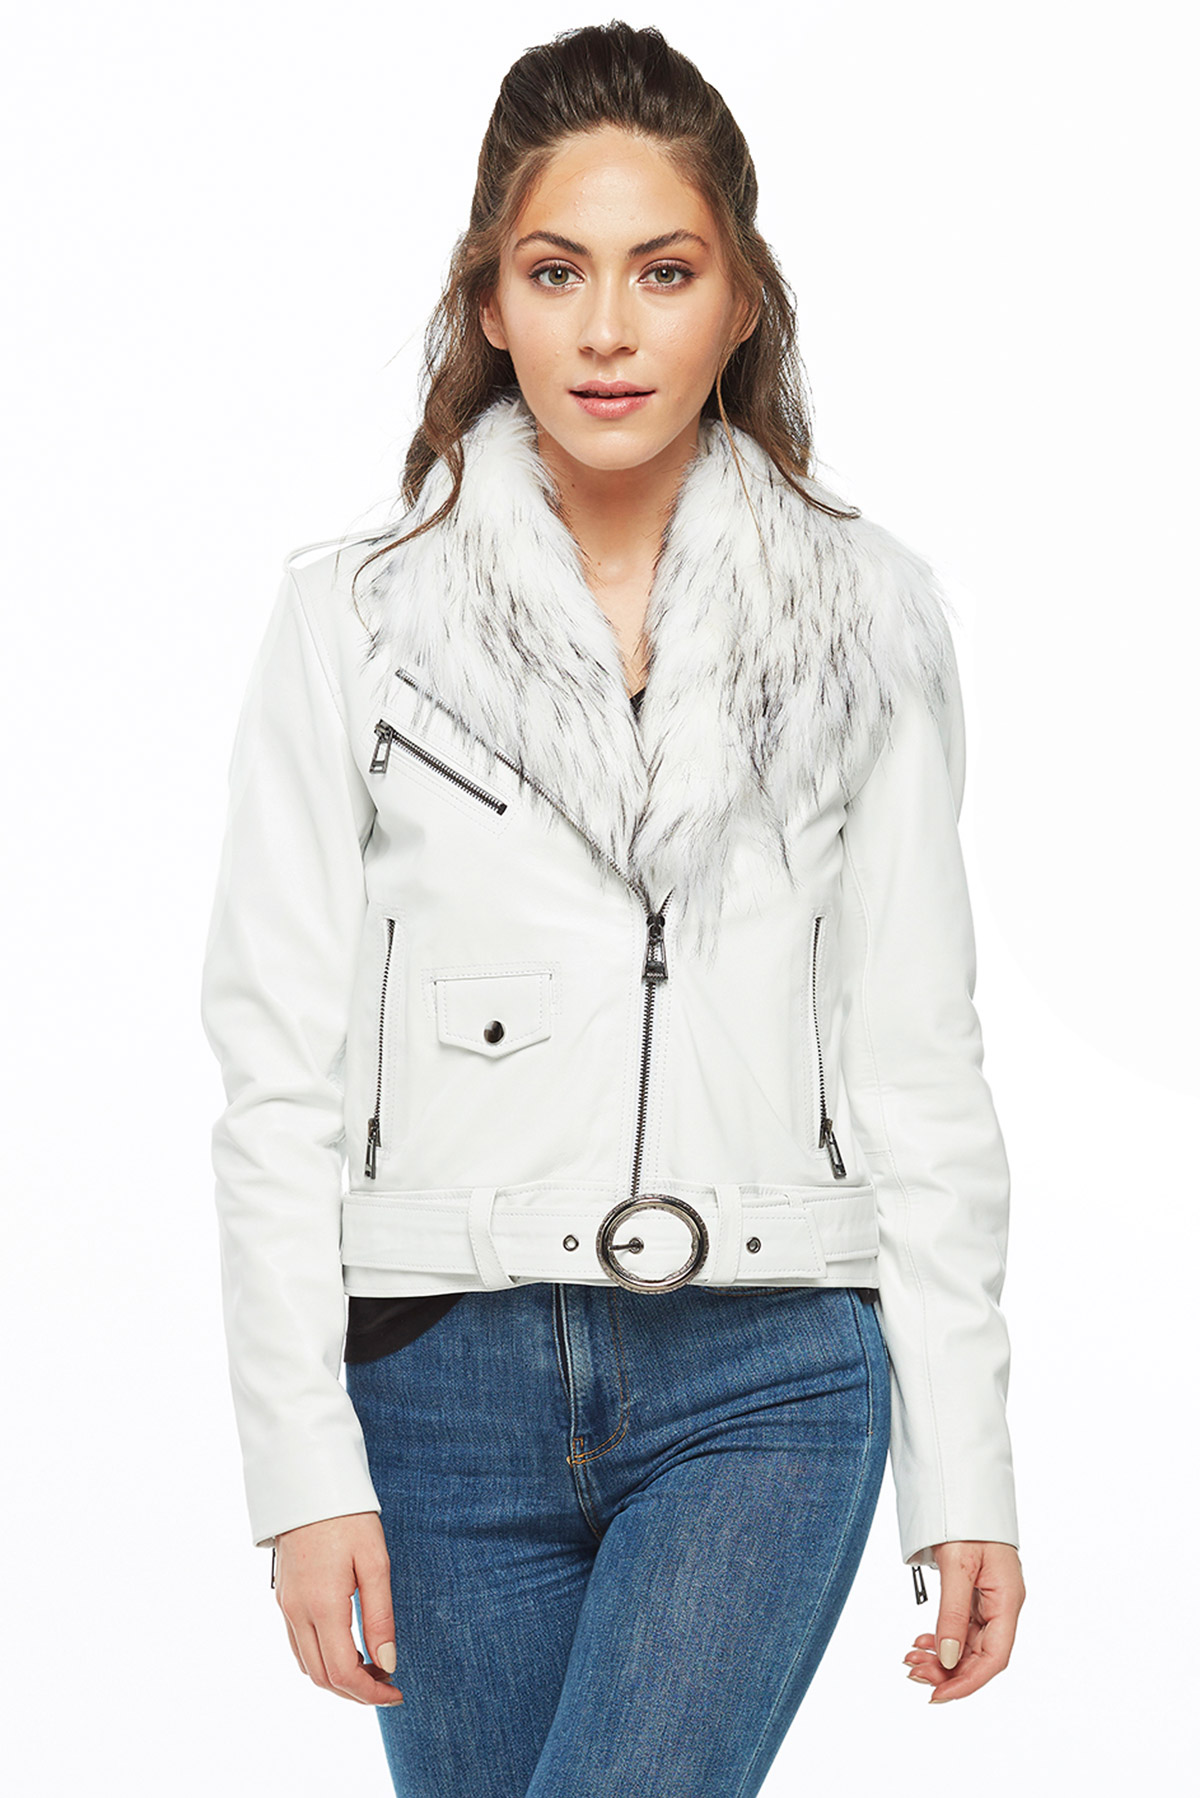 leather jacket with patches women's